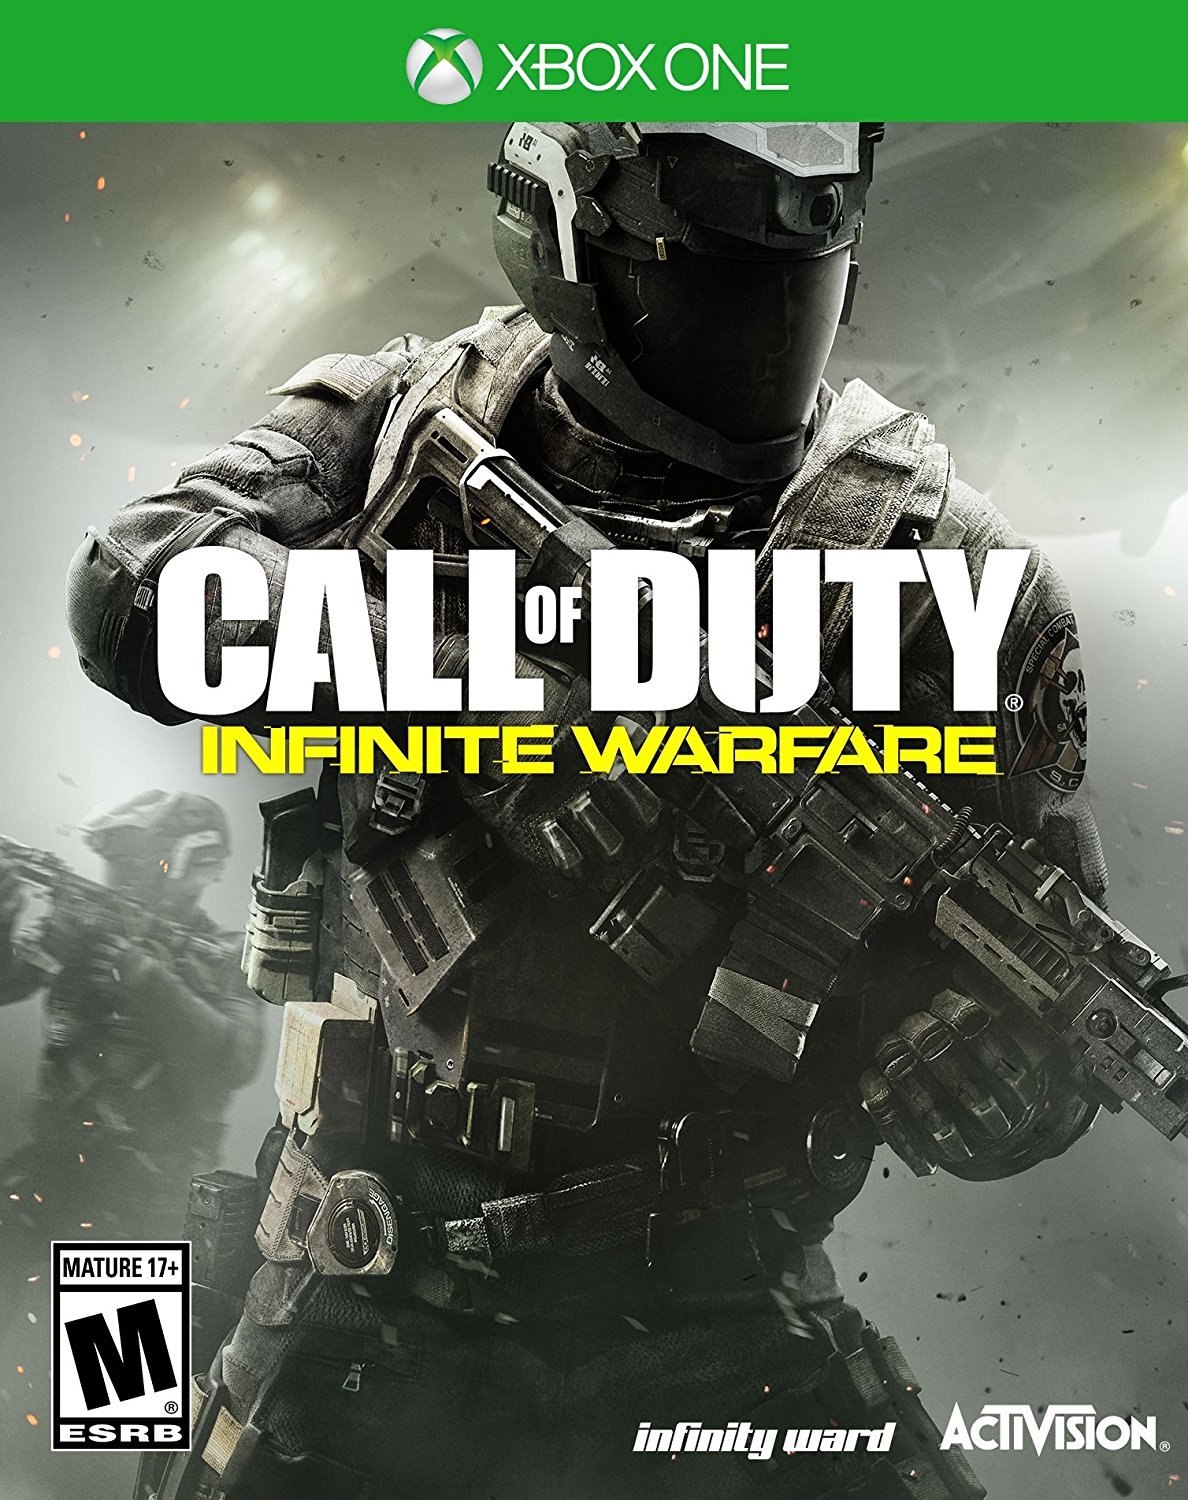 Call of Duty: Infinite Warfare - Standard Edition - Xbox One: Activision Inc